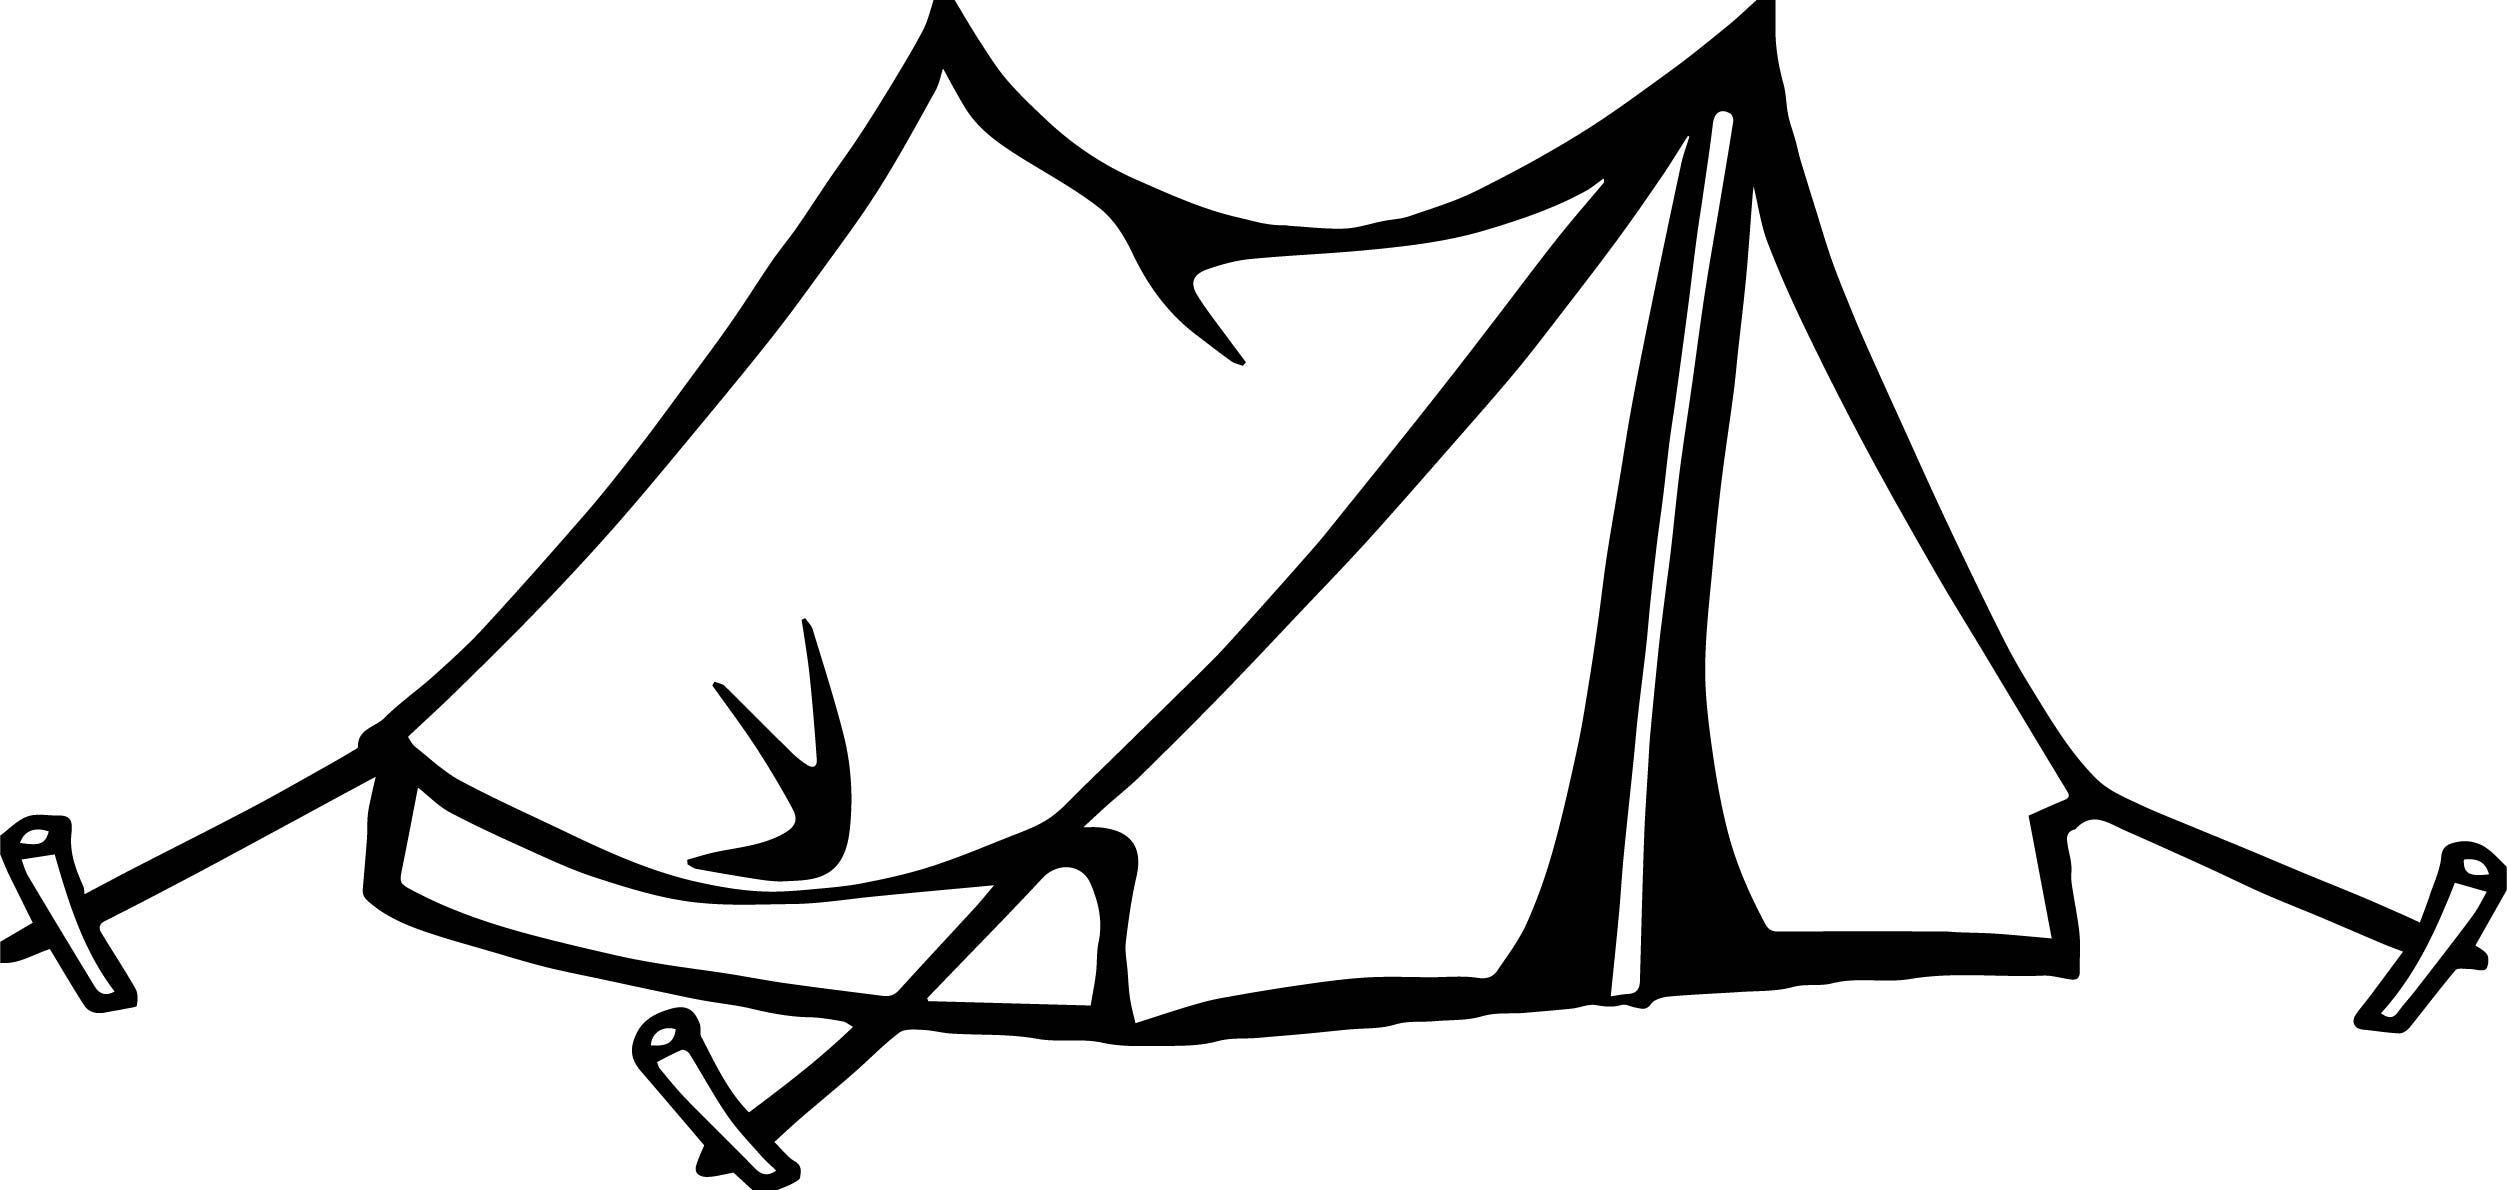 Tent Art Camping Coloring Page Camping Coloring Pages Camping Art Coloring Pages